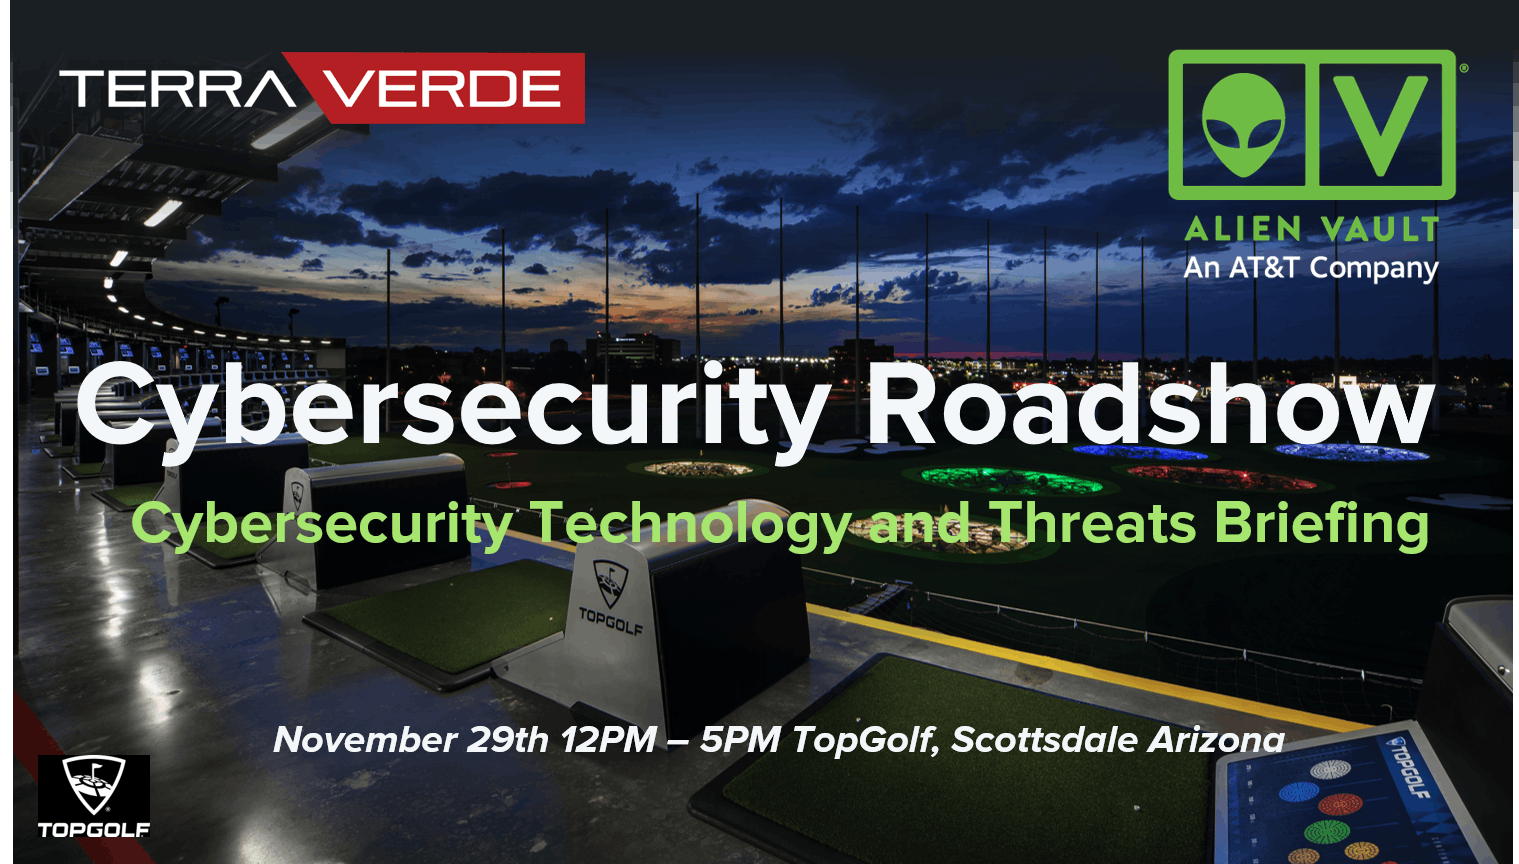 AlienVault & Terra Verde Cybersecurity Roadshow